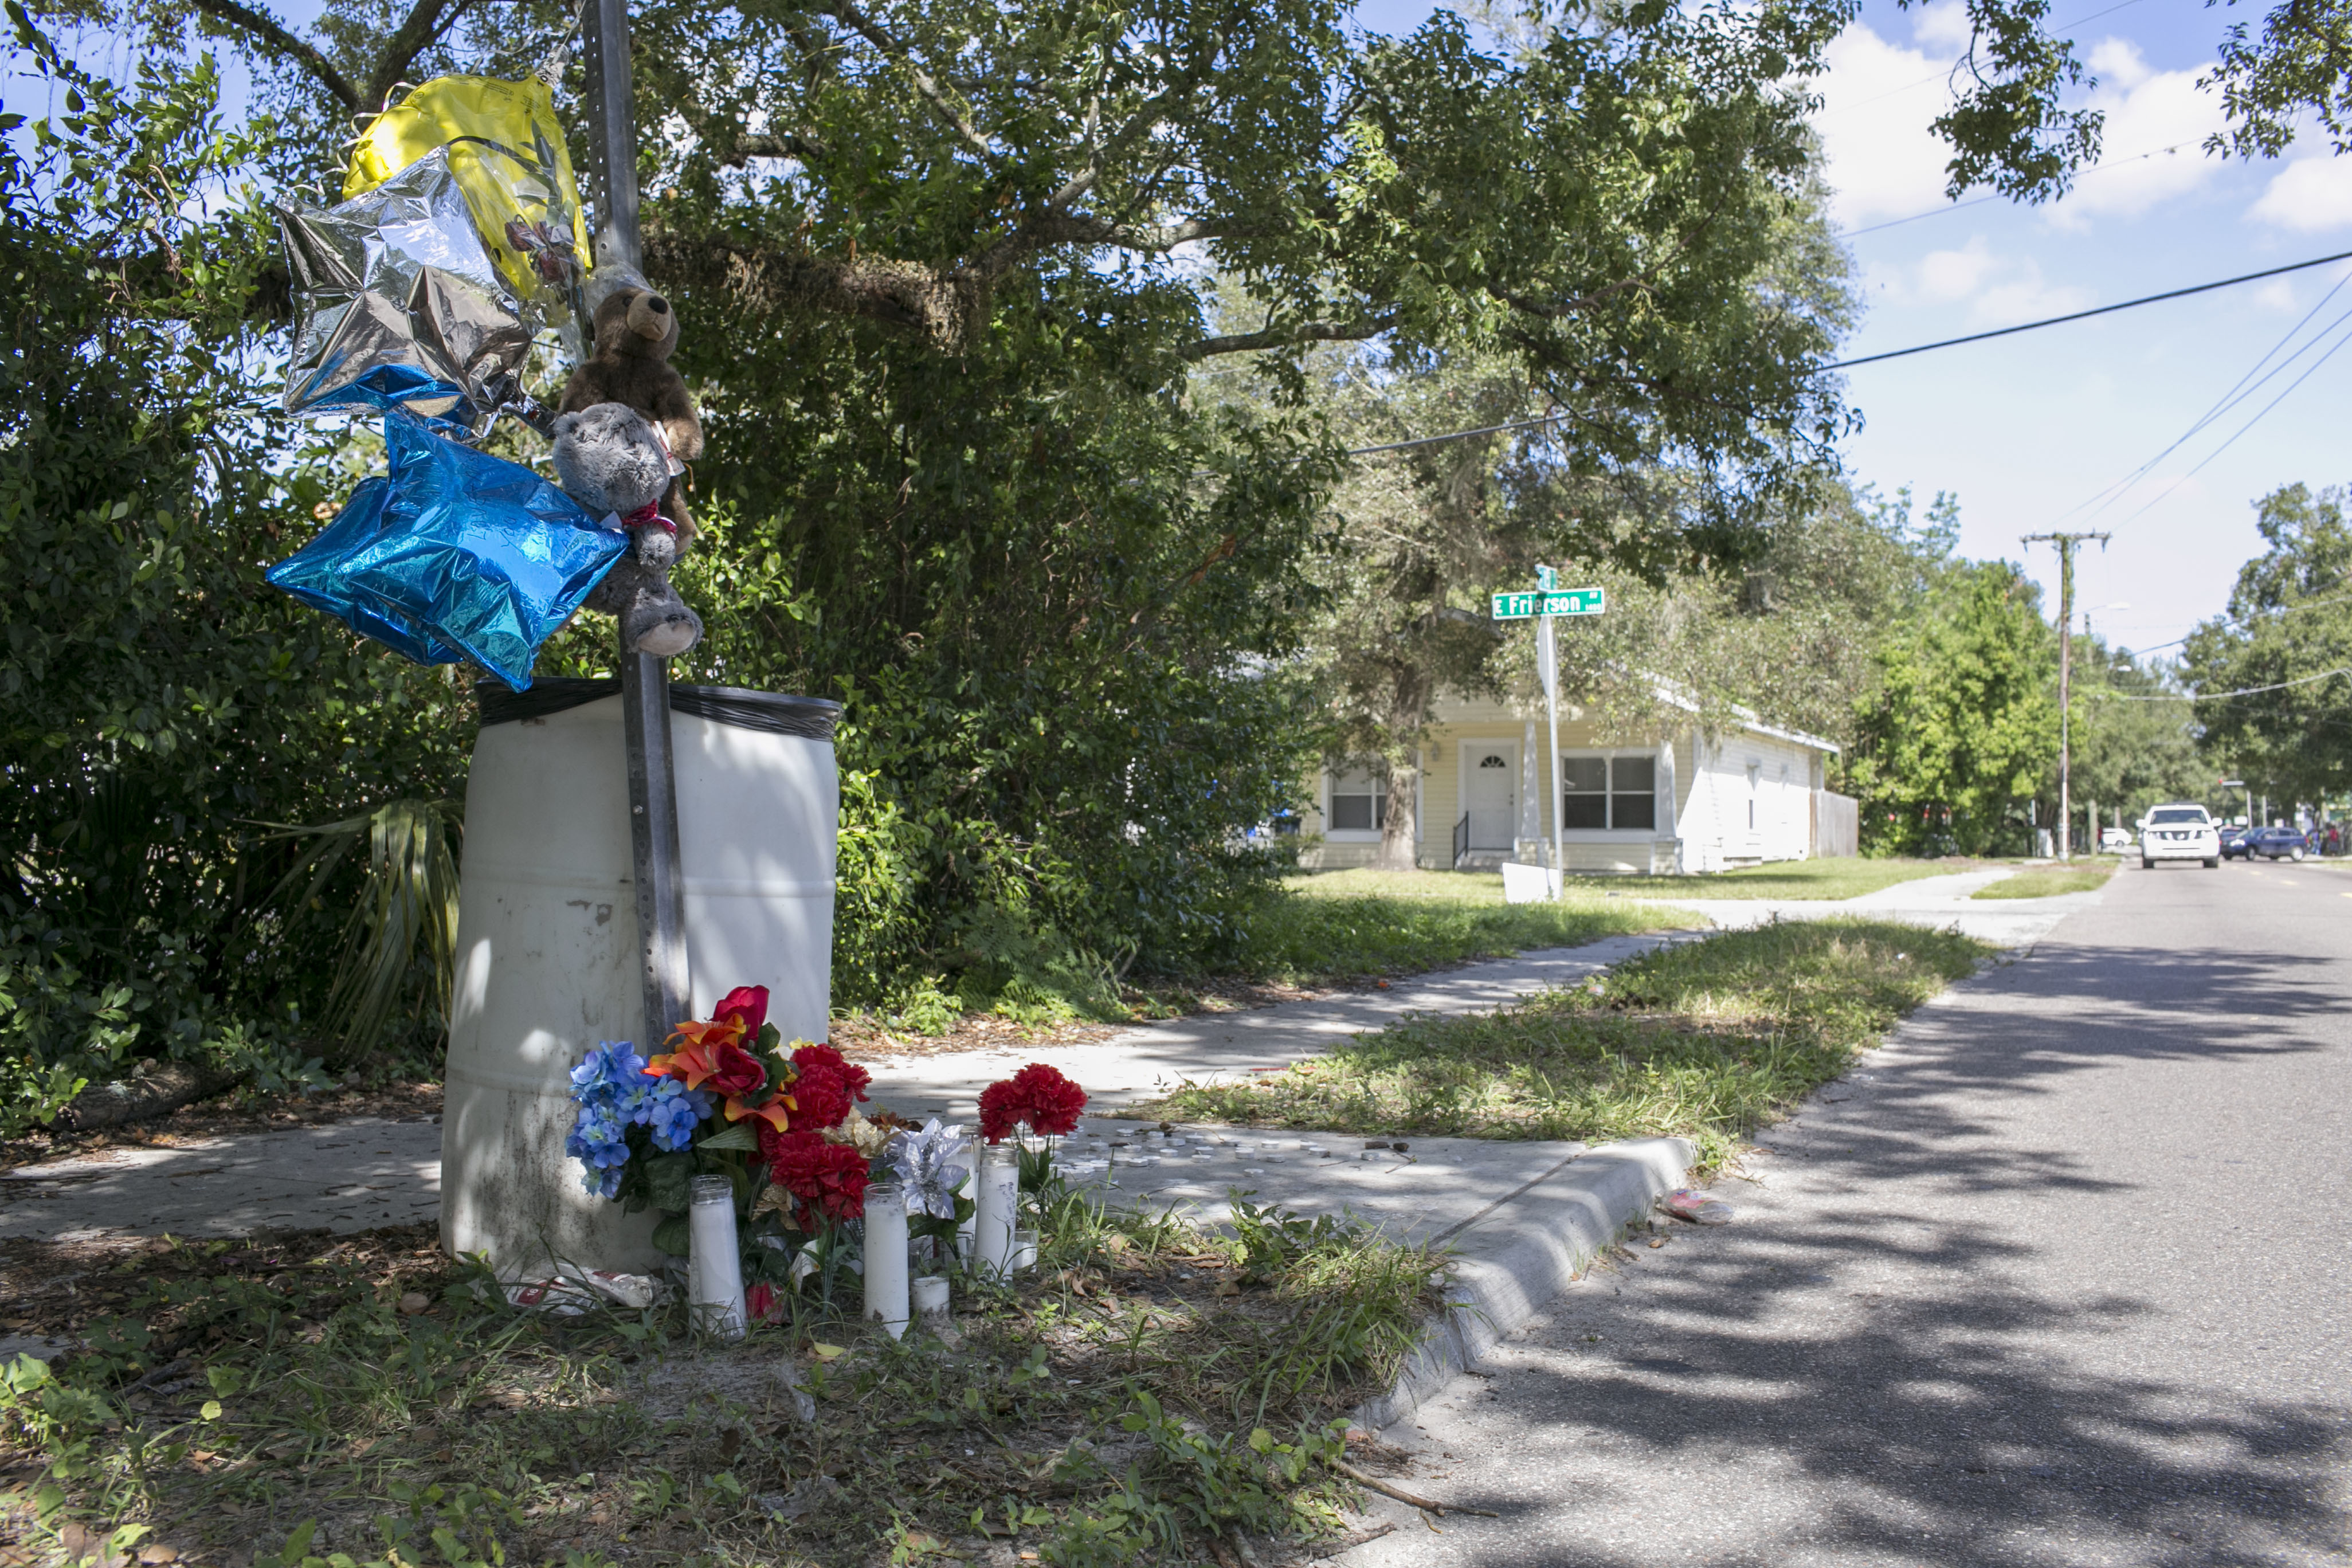 A memorial for Benjamin Mitchell, who was killed on Oct. 9, 2017 in the Seminole Heights neighborhood in Tampa, the first of four recent killings suspected to be tied to a serial killer